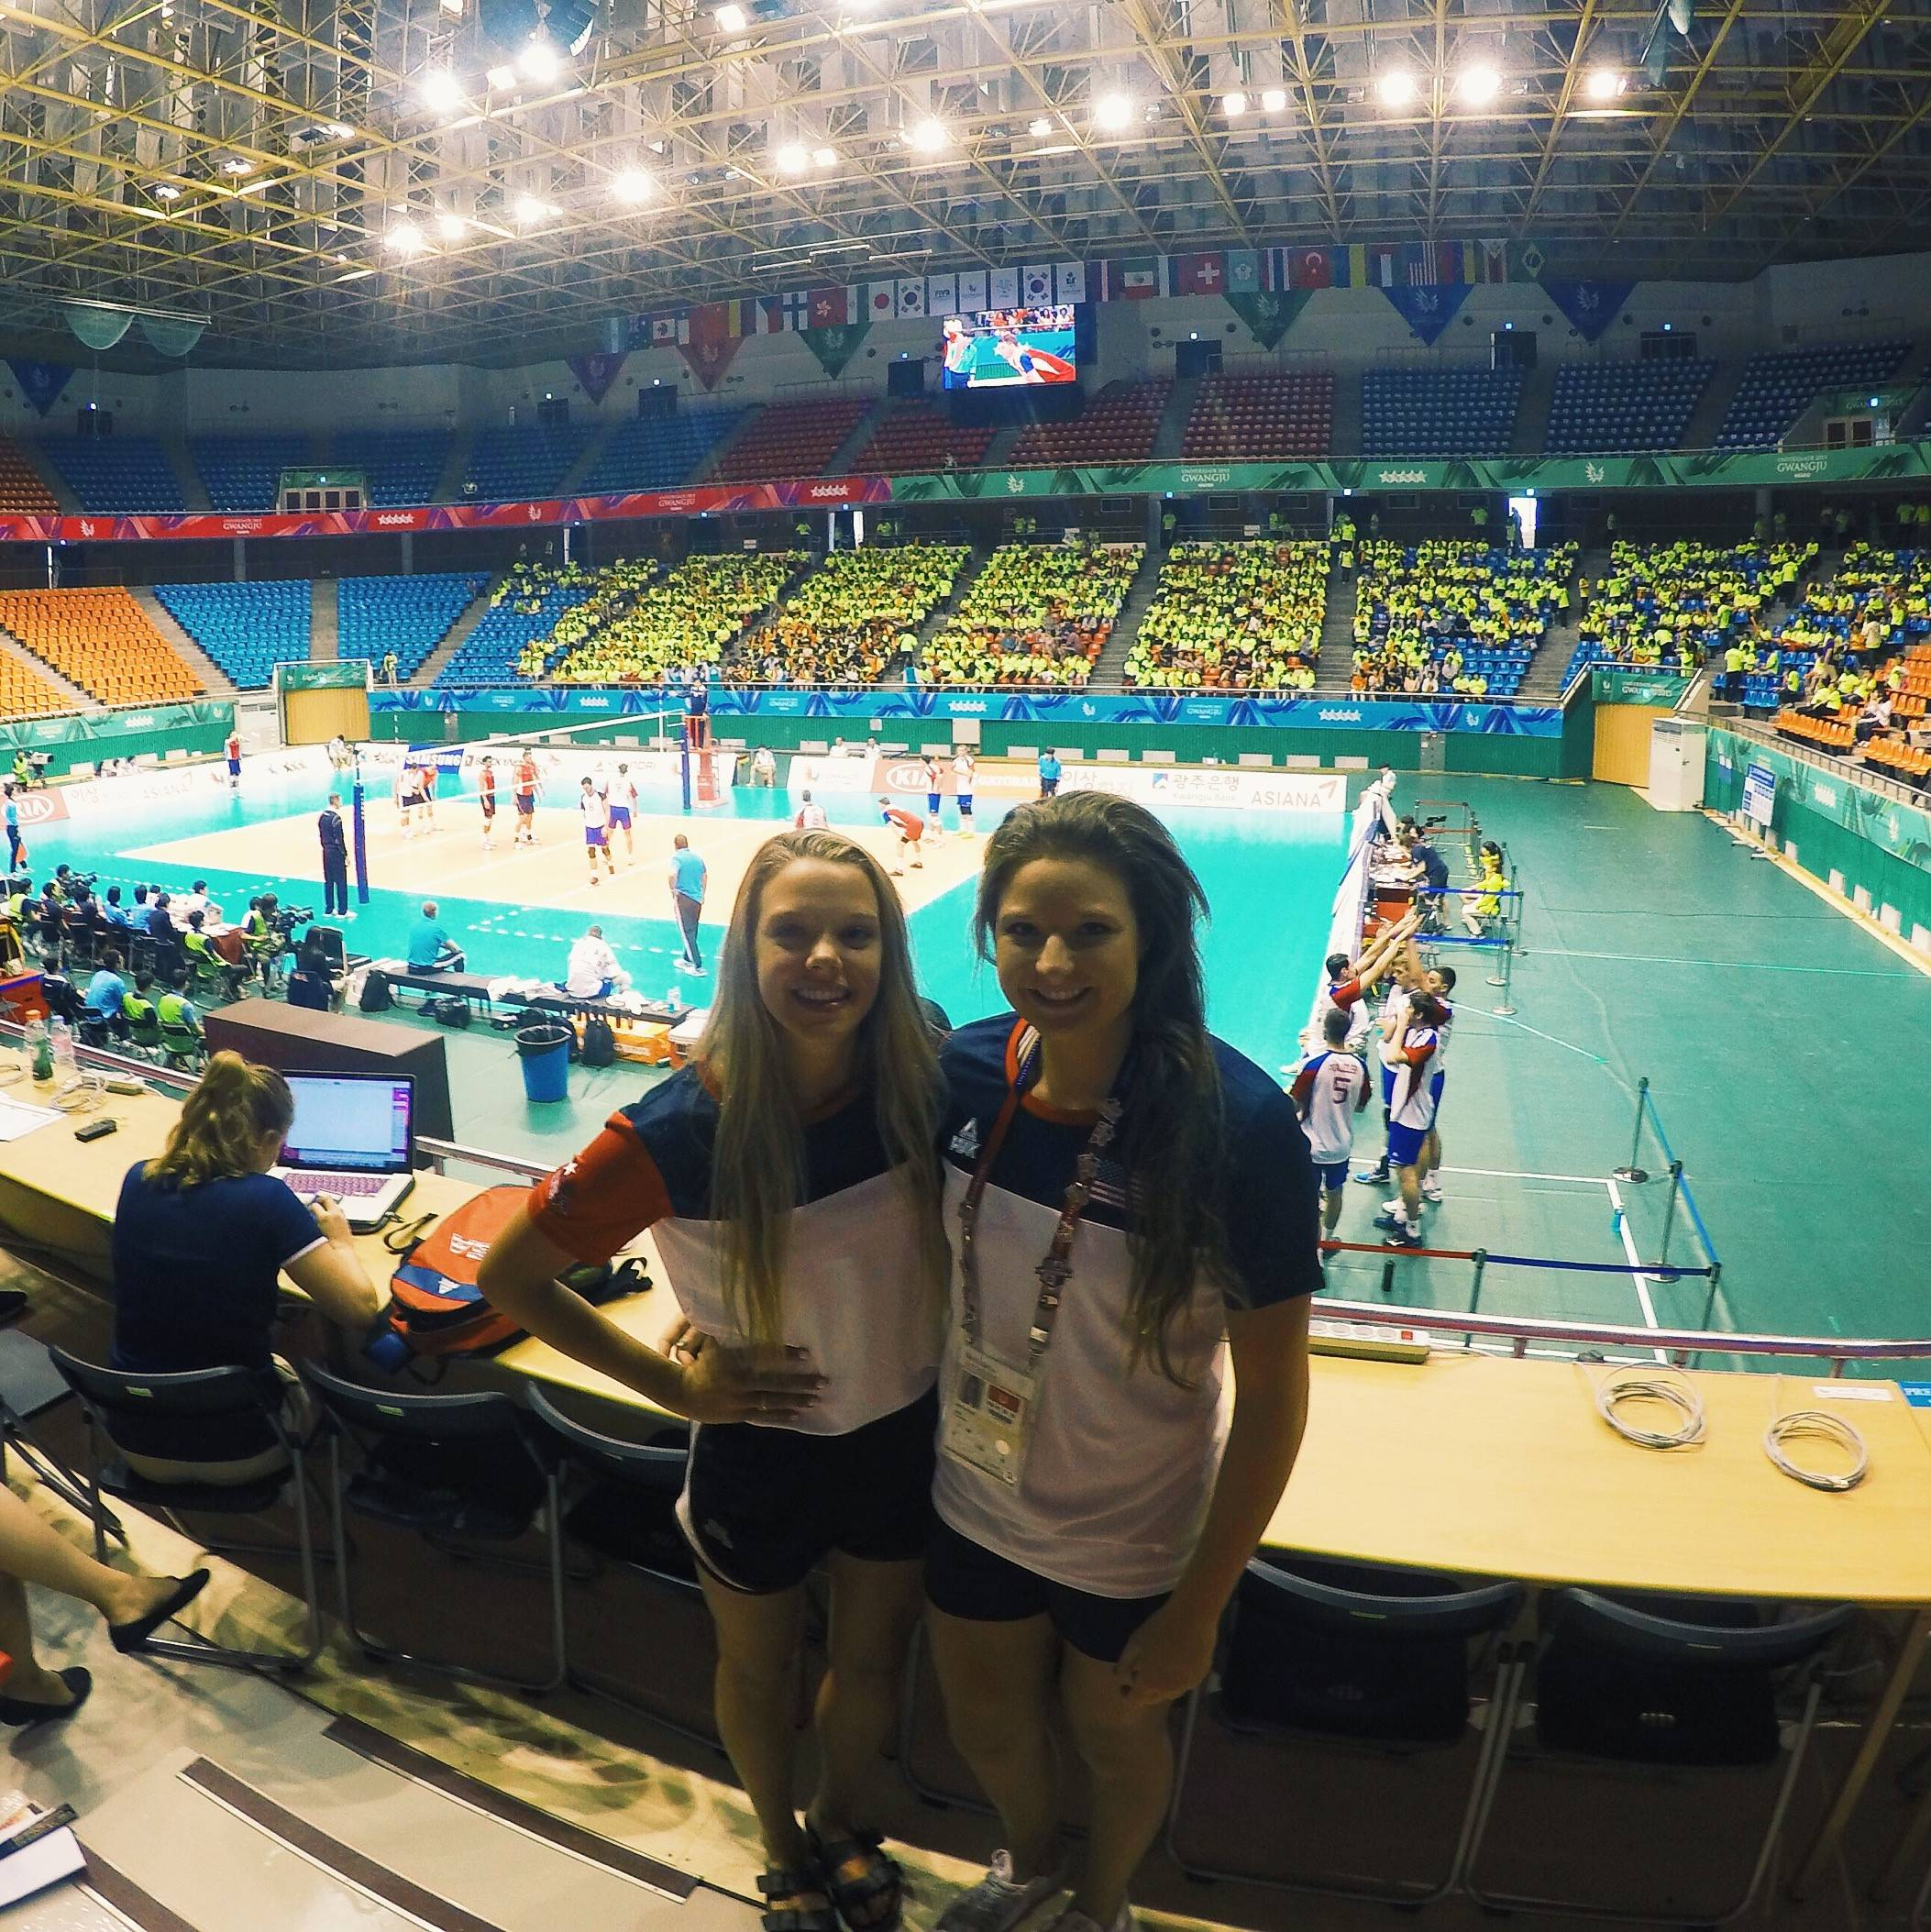 Nicole Walch poses with Paige Tapp at one of the competition venues.